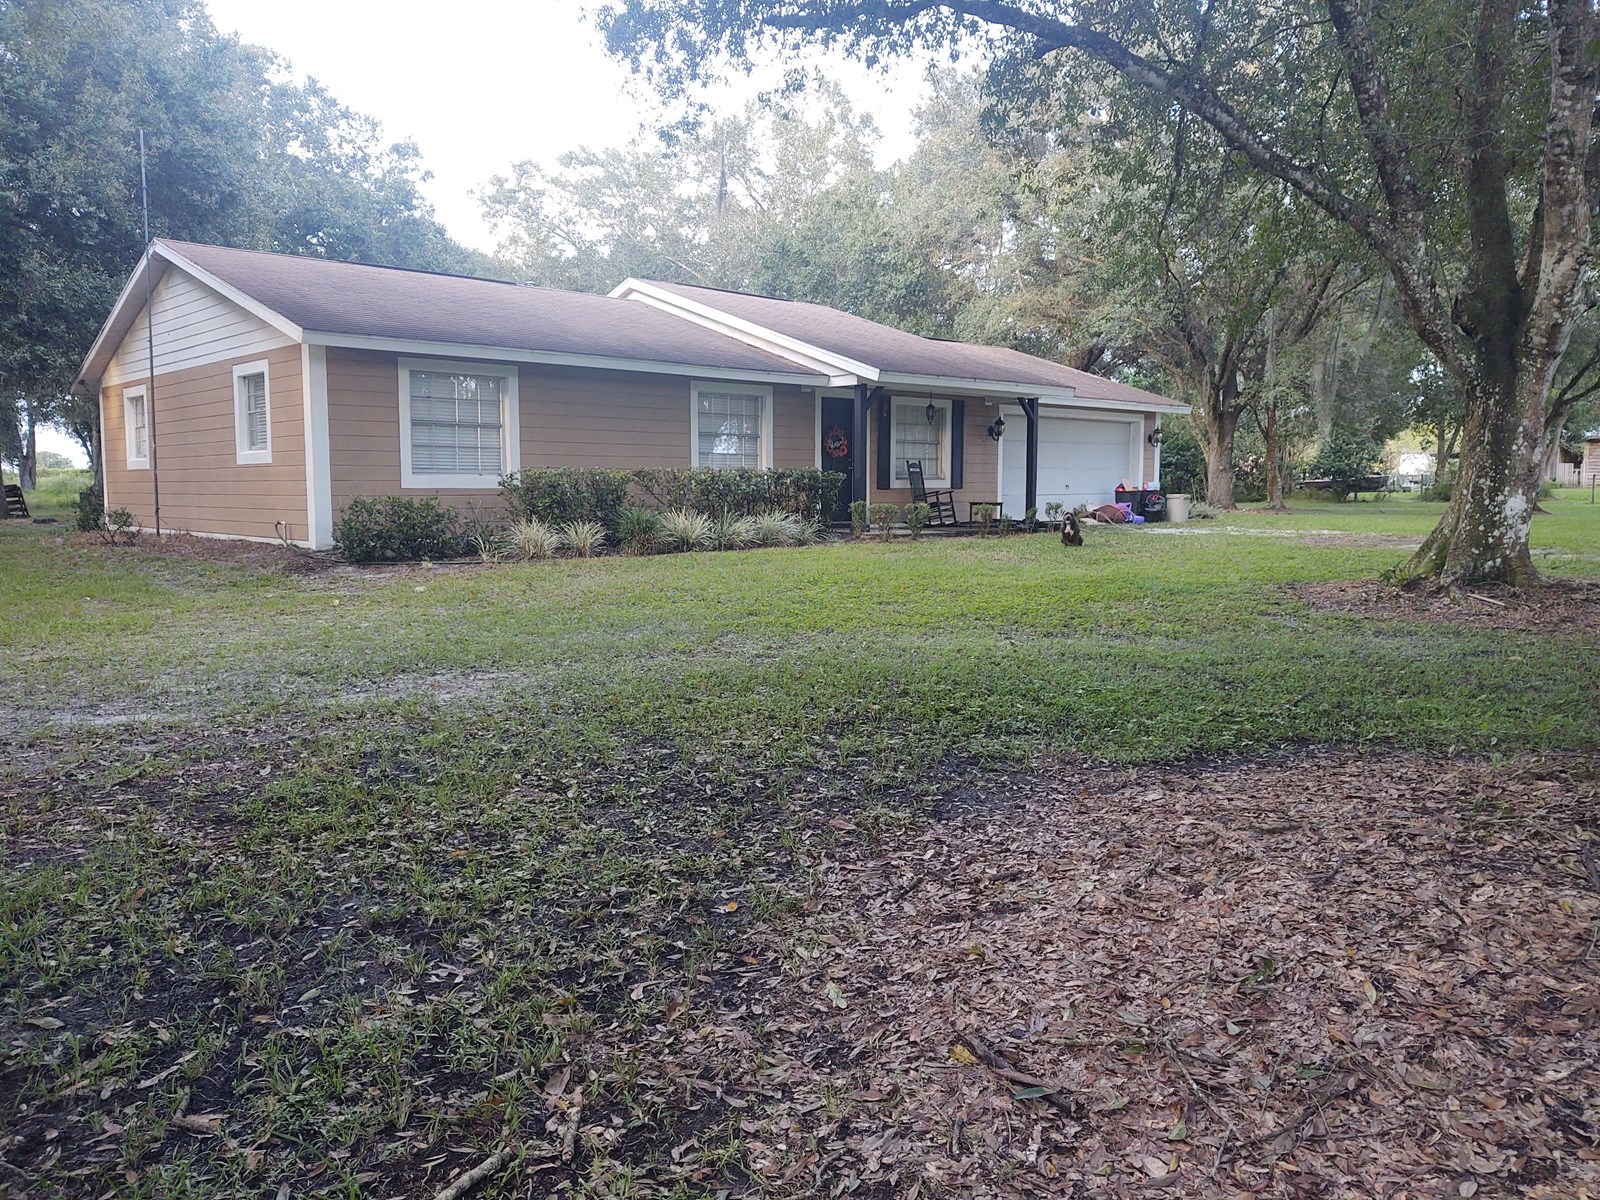 2 BR 2 BA CBS HOME W/LARGE GARAGE ON OVER 4 ACRES!